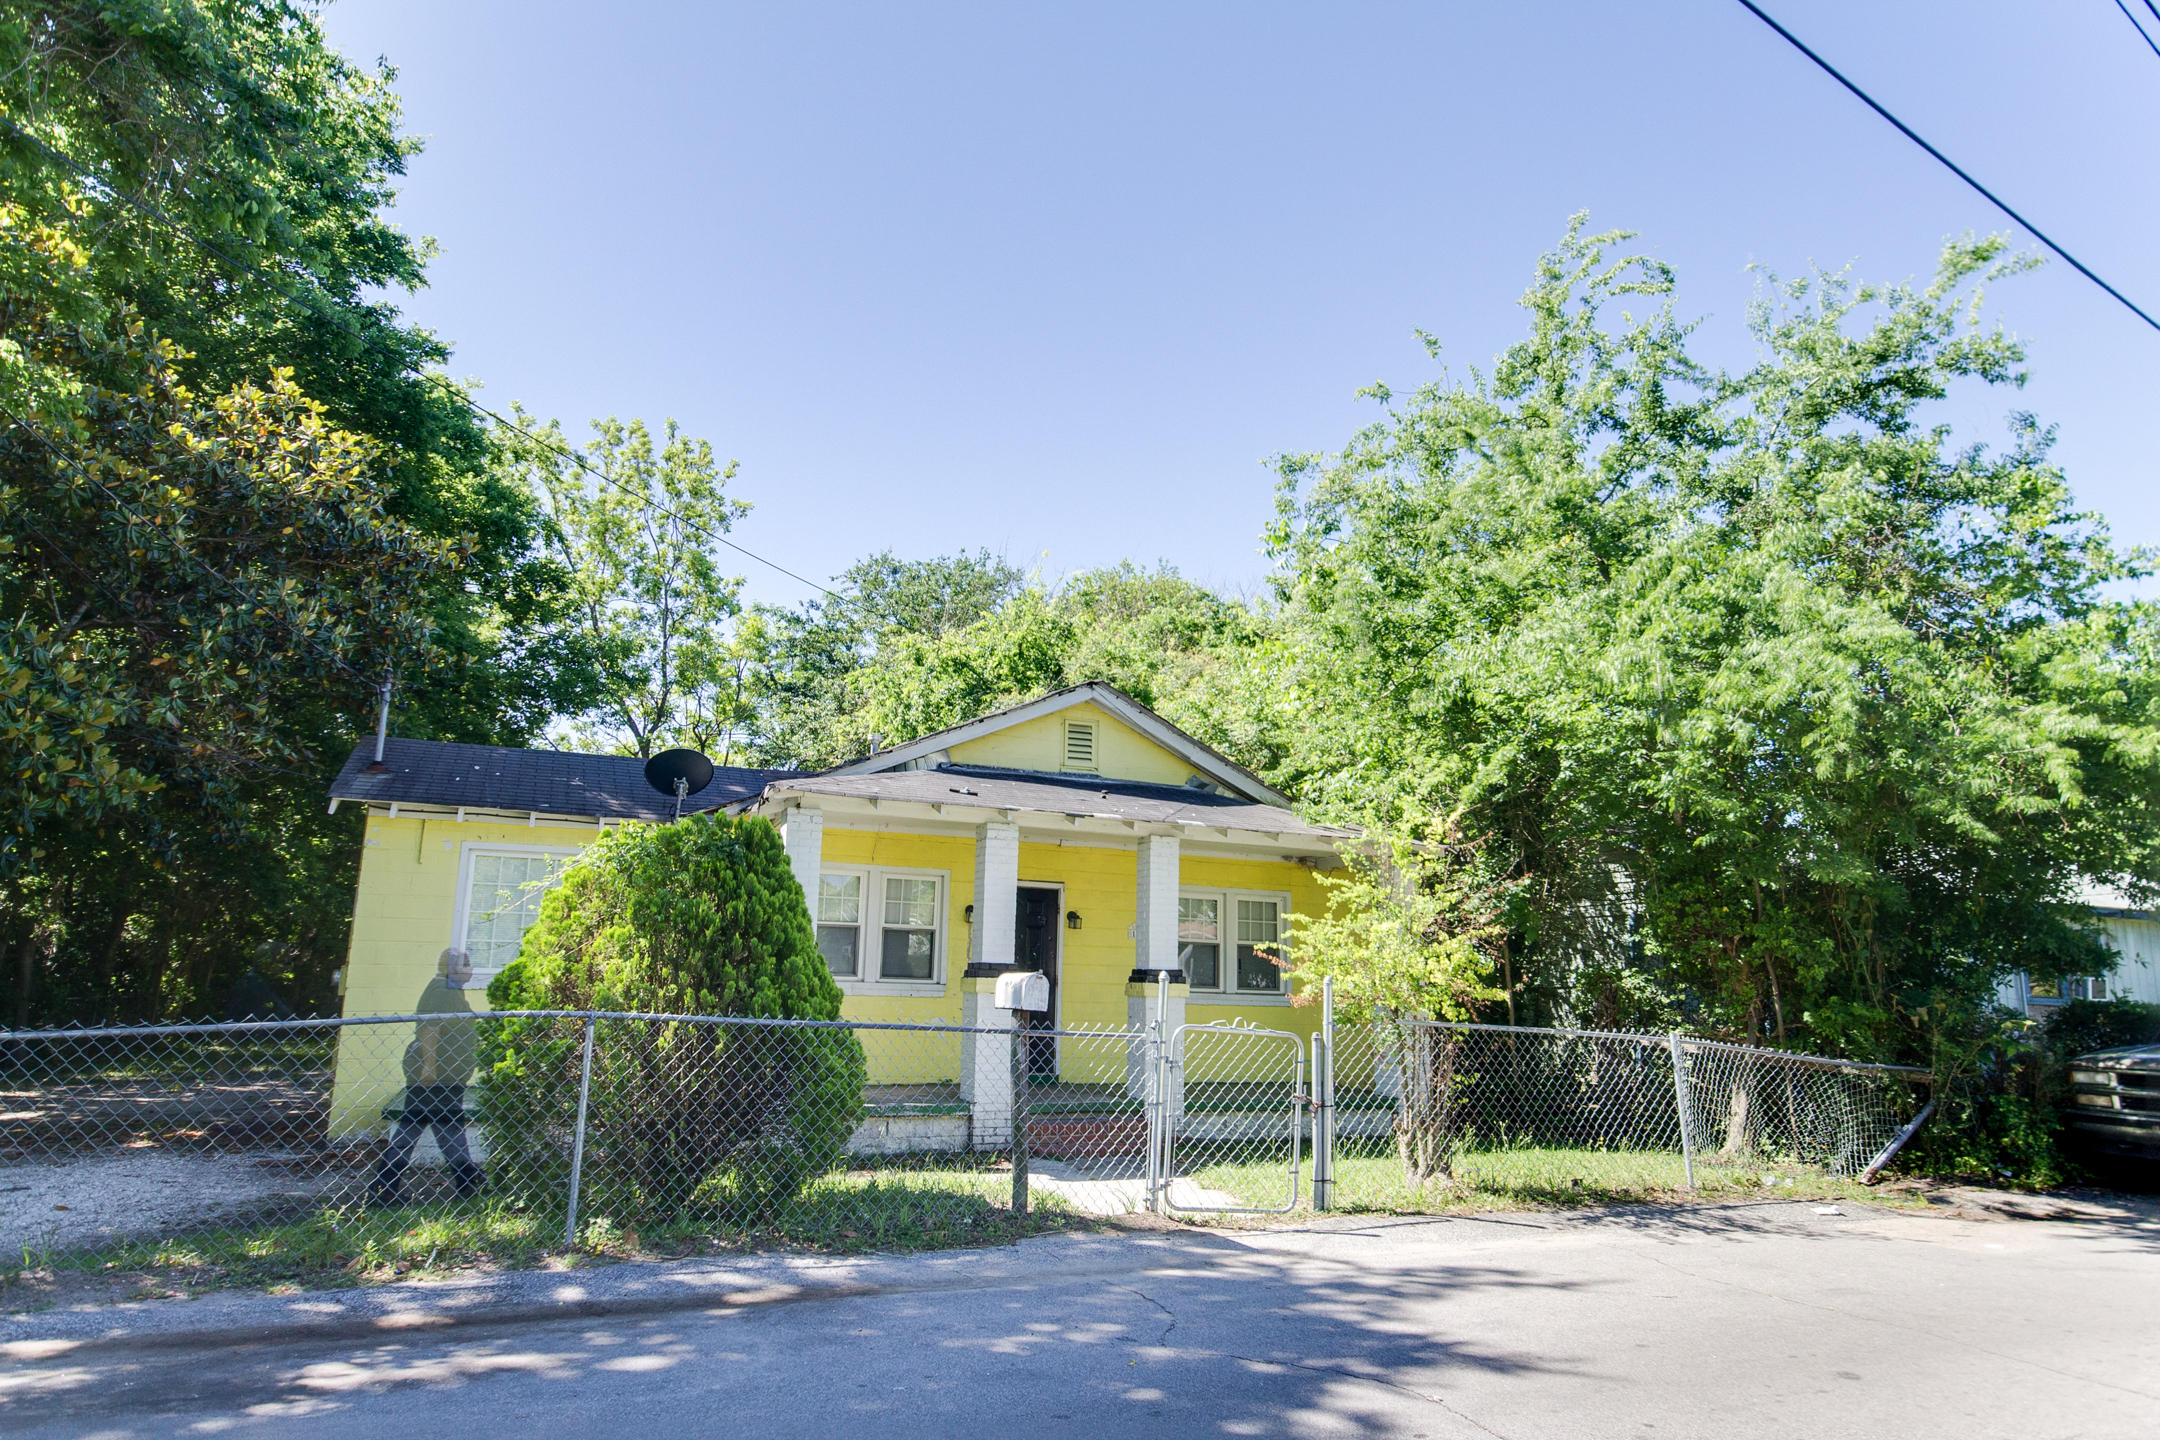 union heights Real Estate